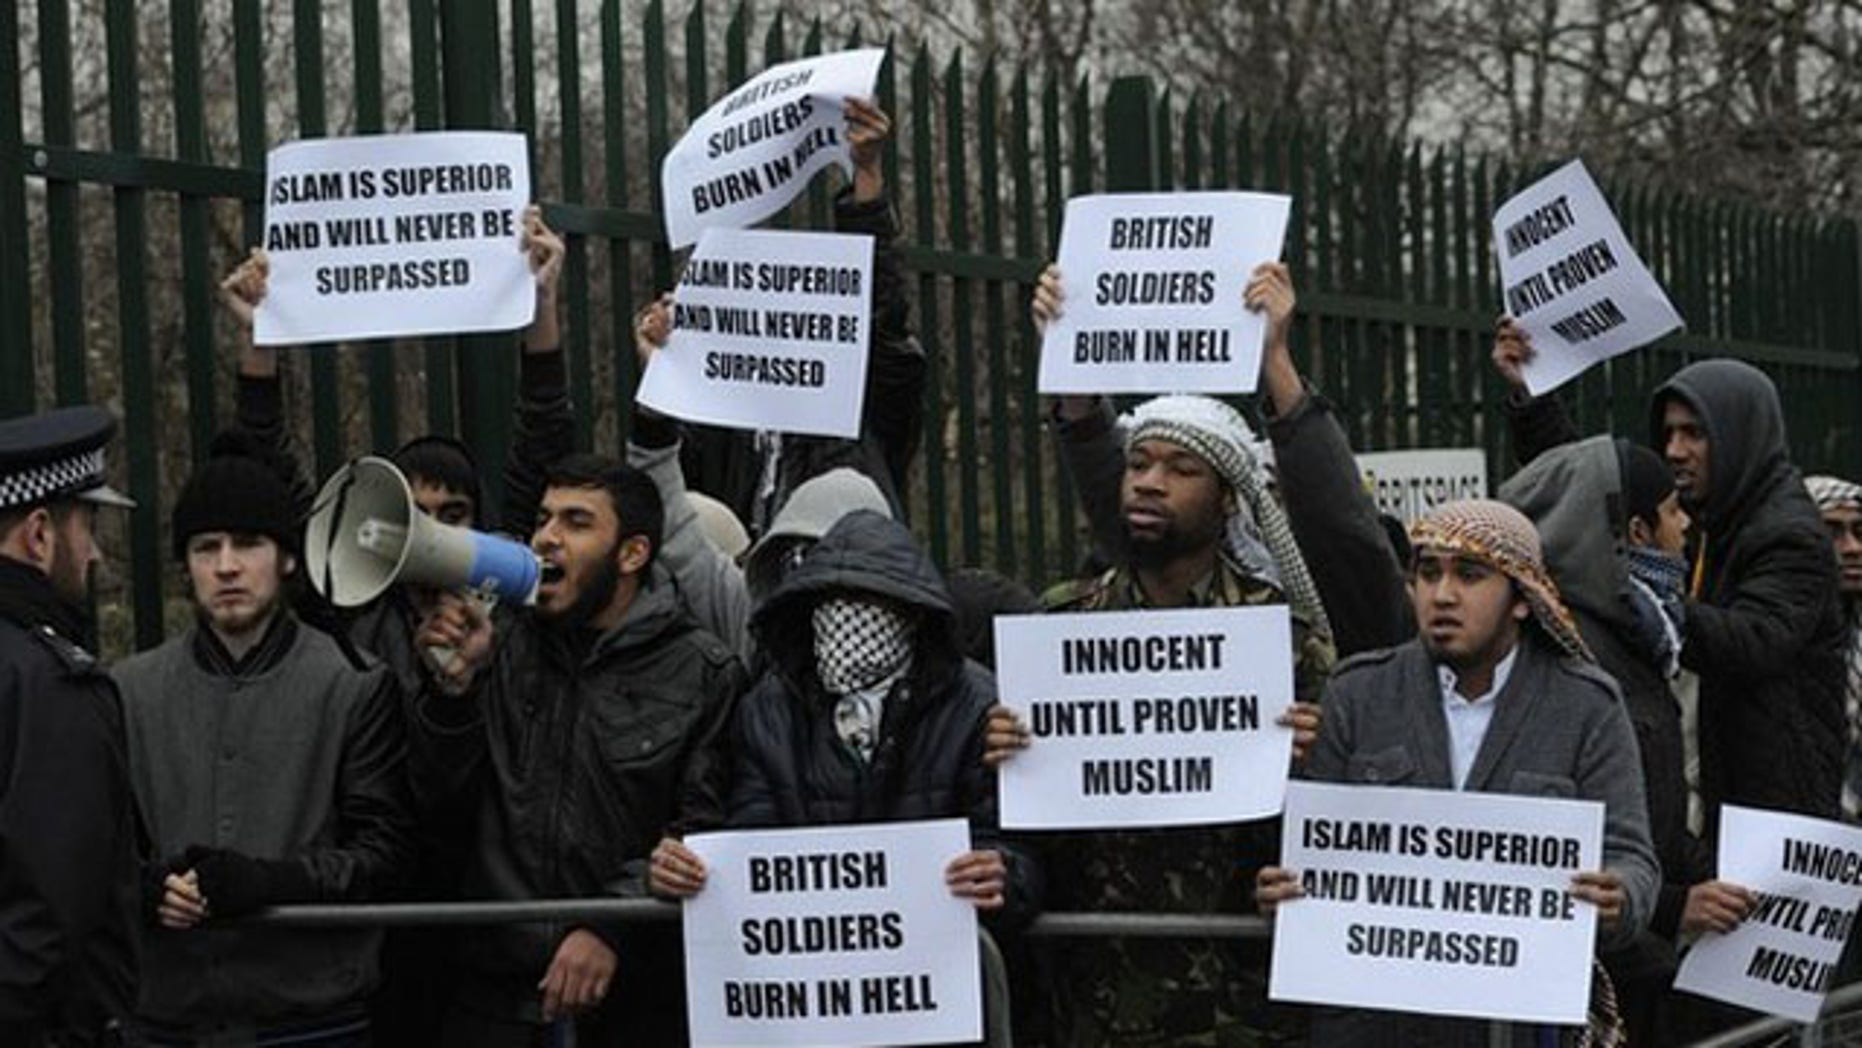 Feb. 23: Demonstrators supporting Mohammad Haque and Emdadur Choudhury protest as they arrive at Belmarsh Magistrates Court in south-east London. The trial of two men accused of burning poppies on the anniversary of Armistice Day started on Wednesday. Mohammad Haque, 30, and Emdadur Choudhury, 26, were arrested during a demonstration by Islamist group Muslims Against Crusades in Kensington, west London, on November 11.